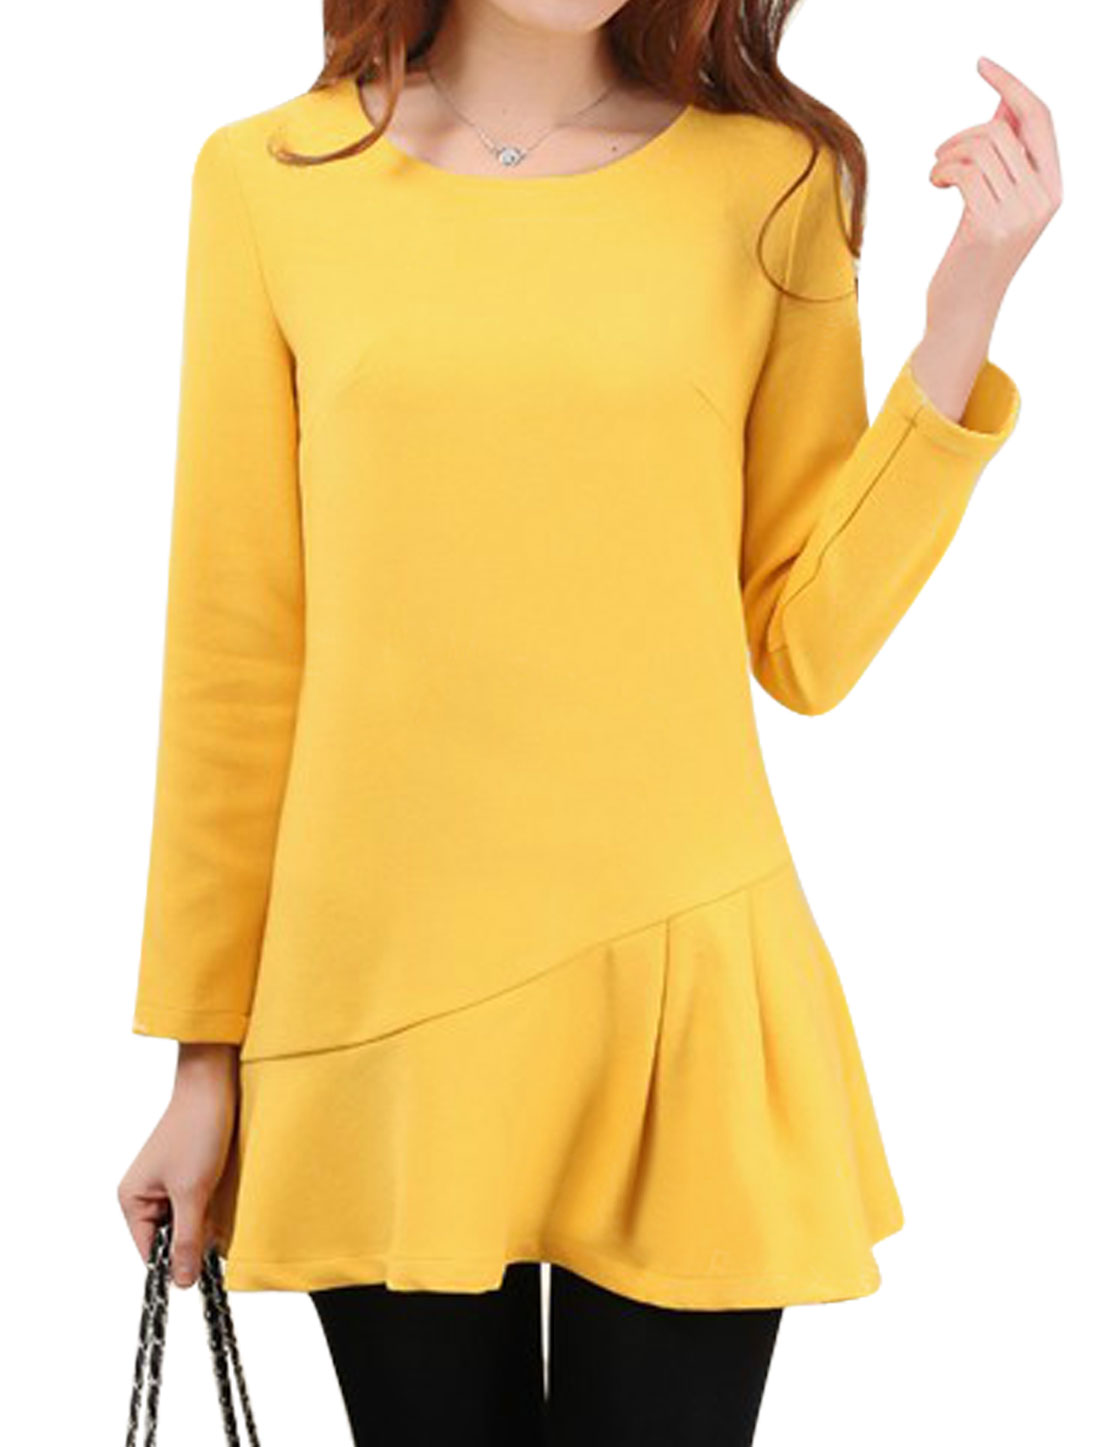 Ladies Yellow Long Sleeves Round Neck Pullover Slim Fit Tunic Top XS